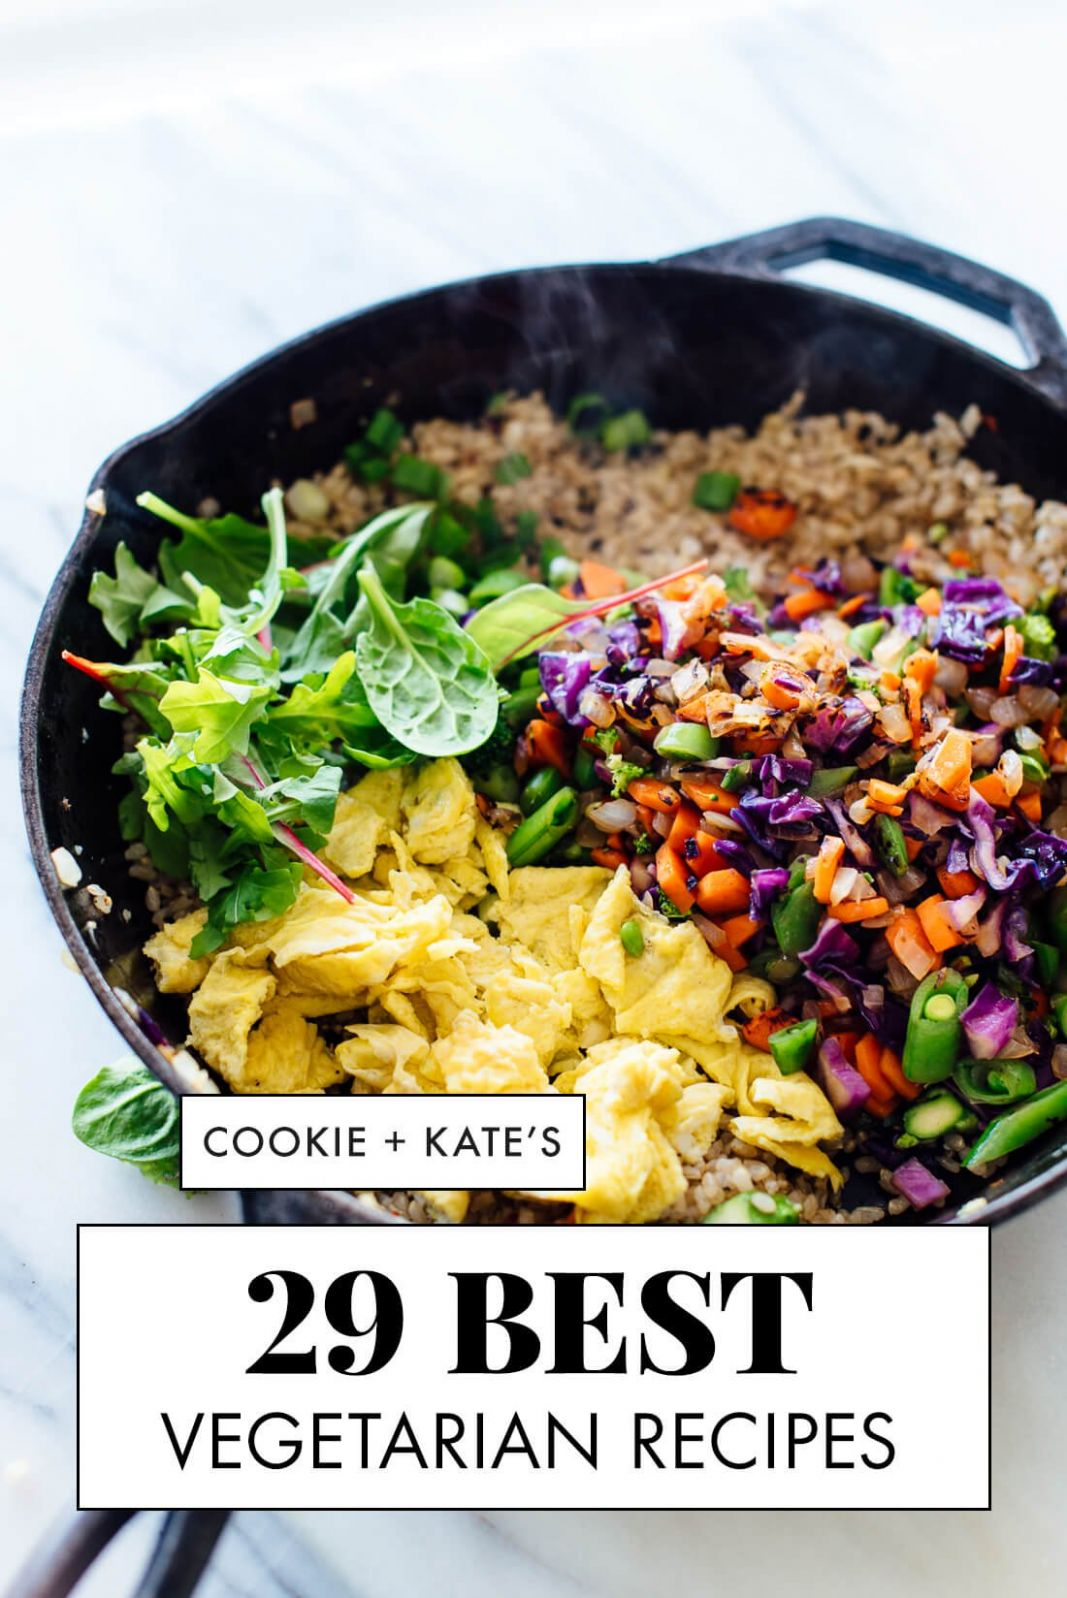 8 Best Vegetarian Recipes - Cookie and Kate